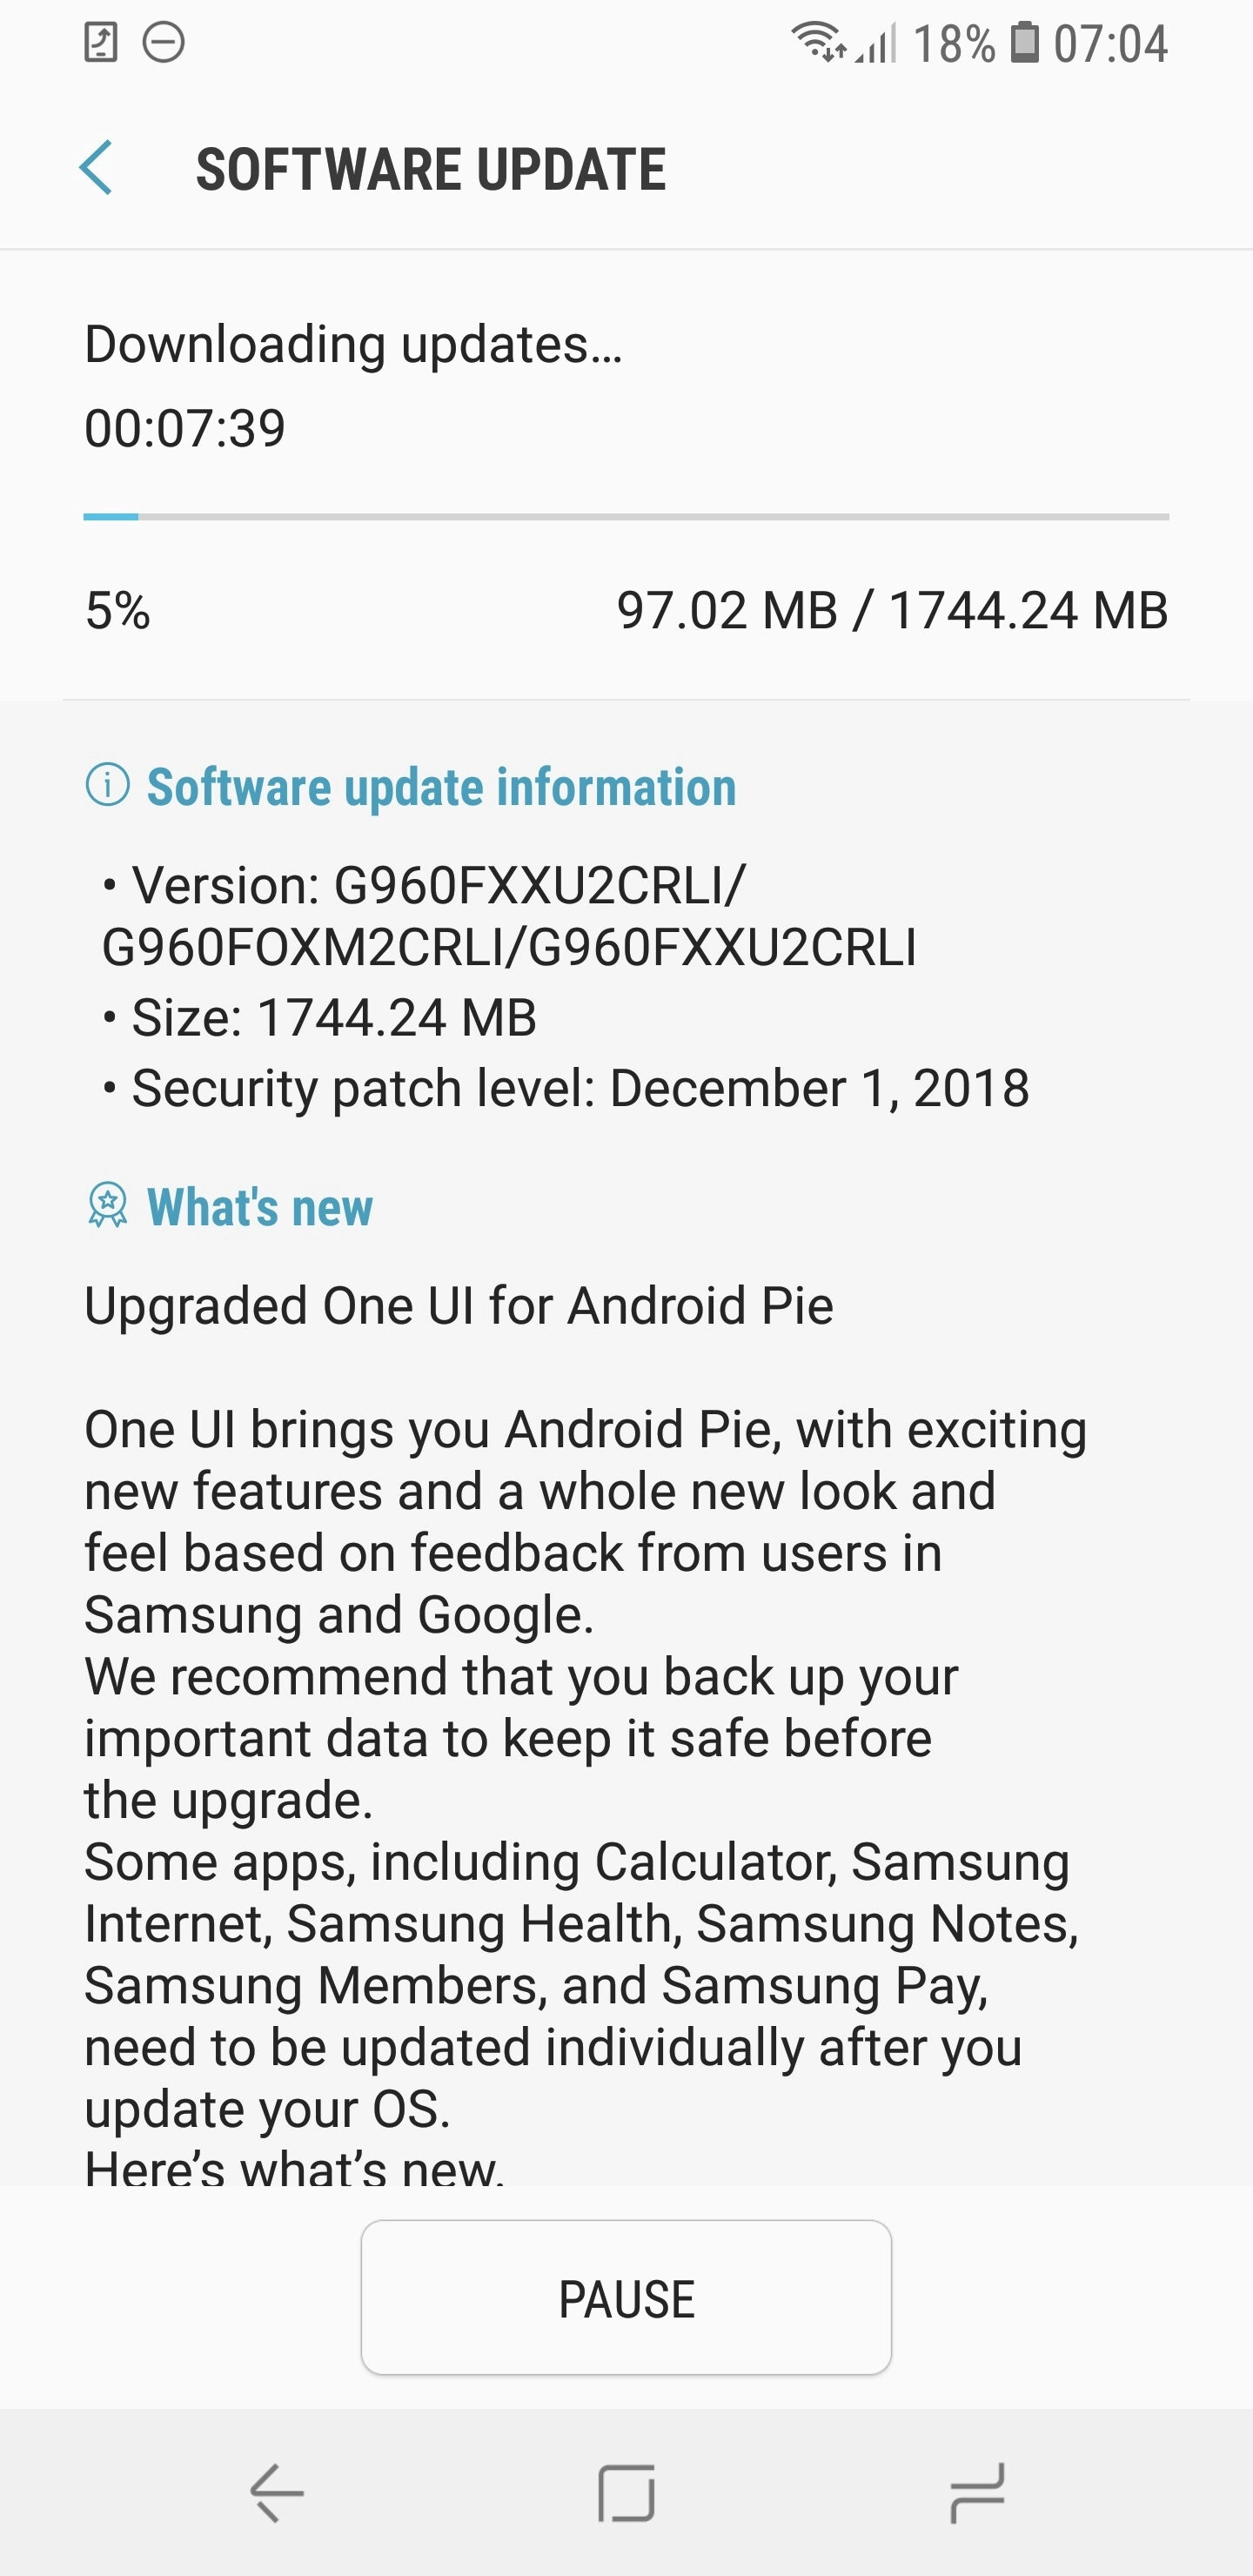 Samsung starts rolling out Android 9 Pie for Galaxy S9/S9+